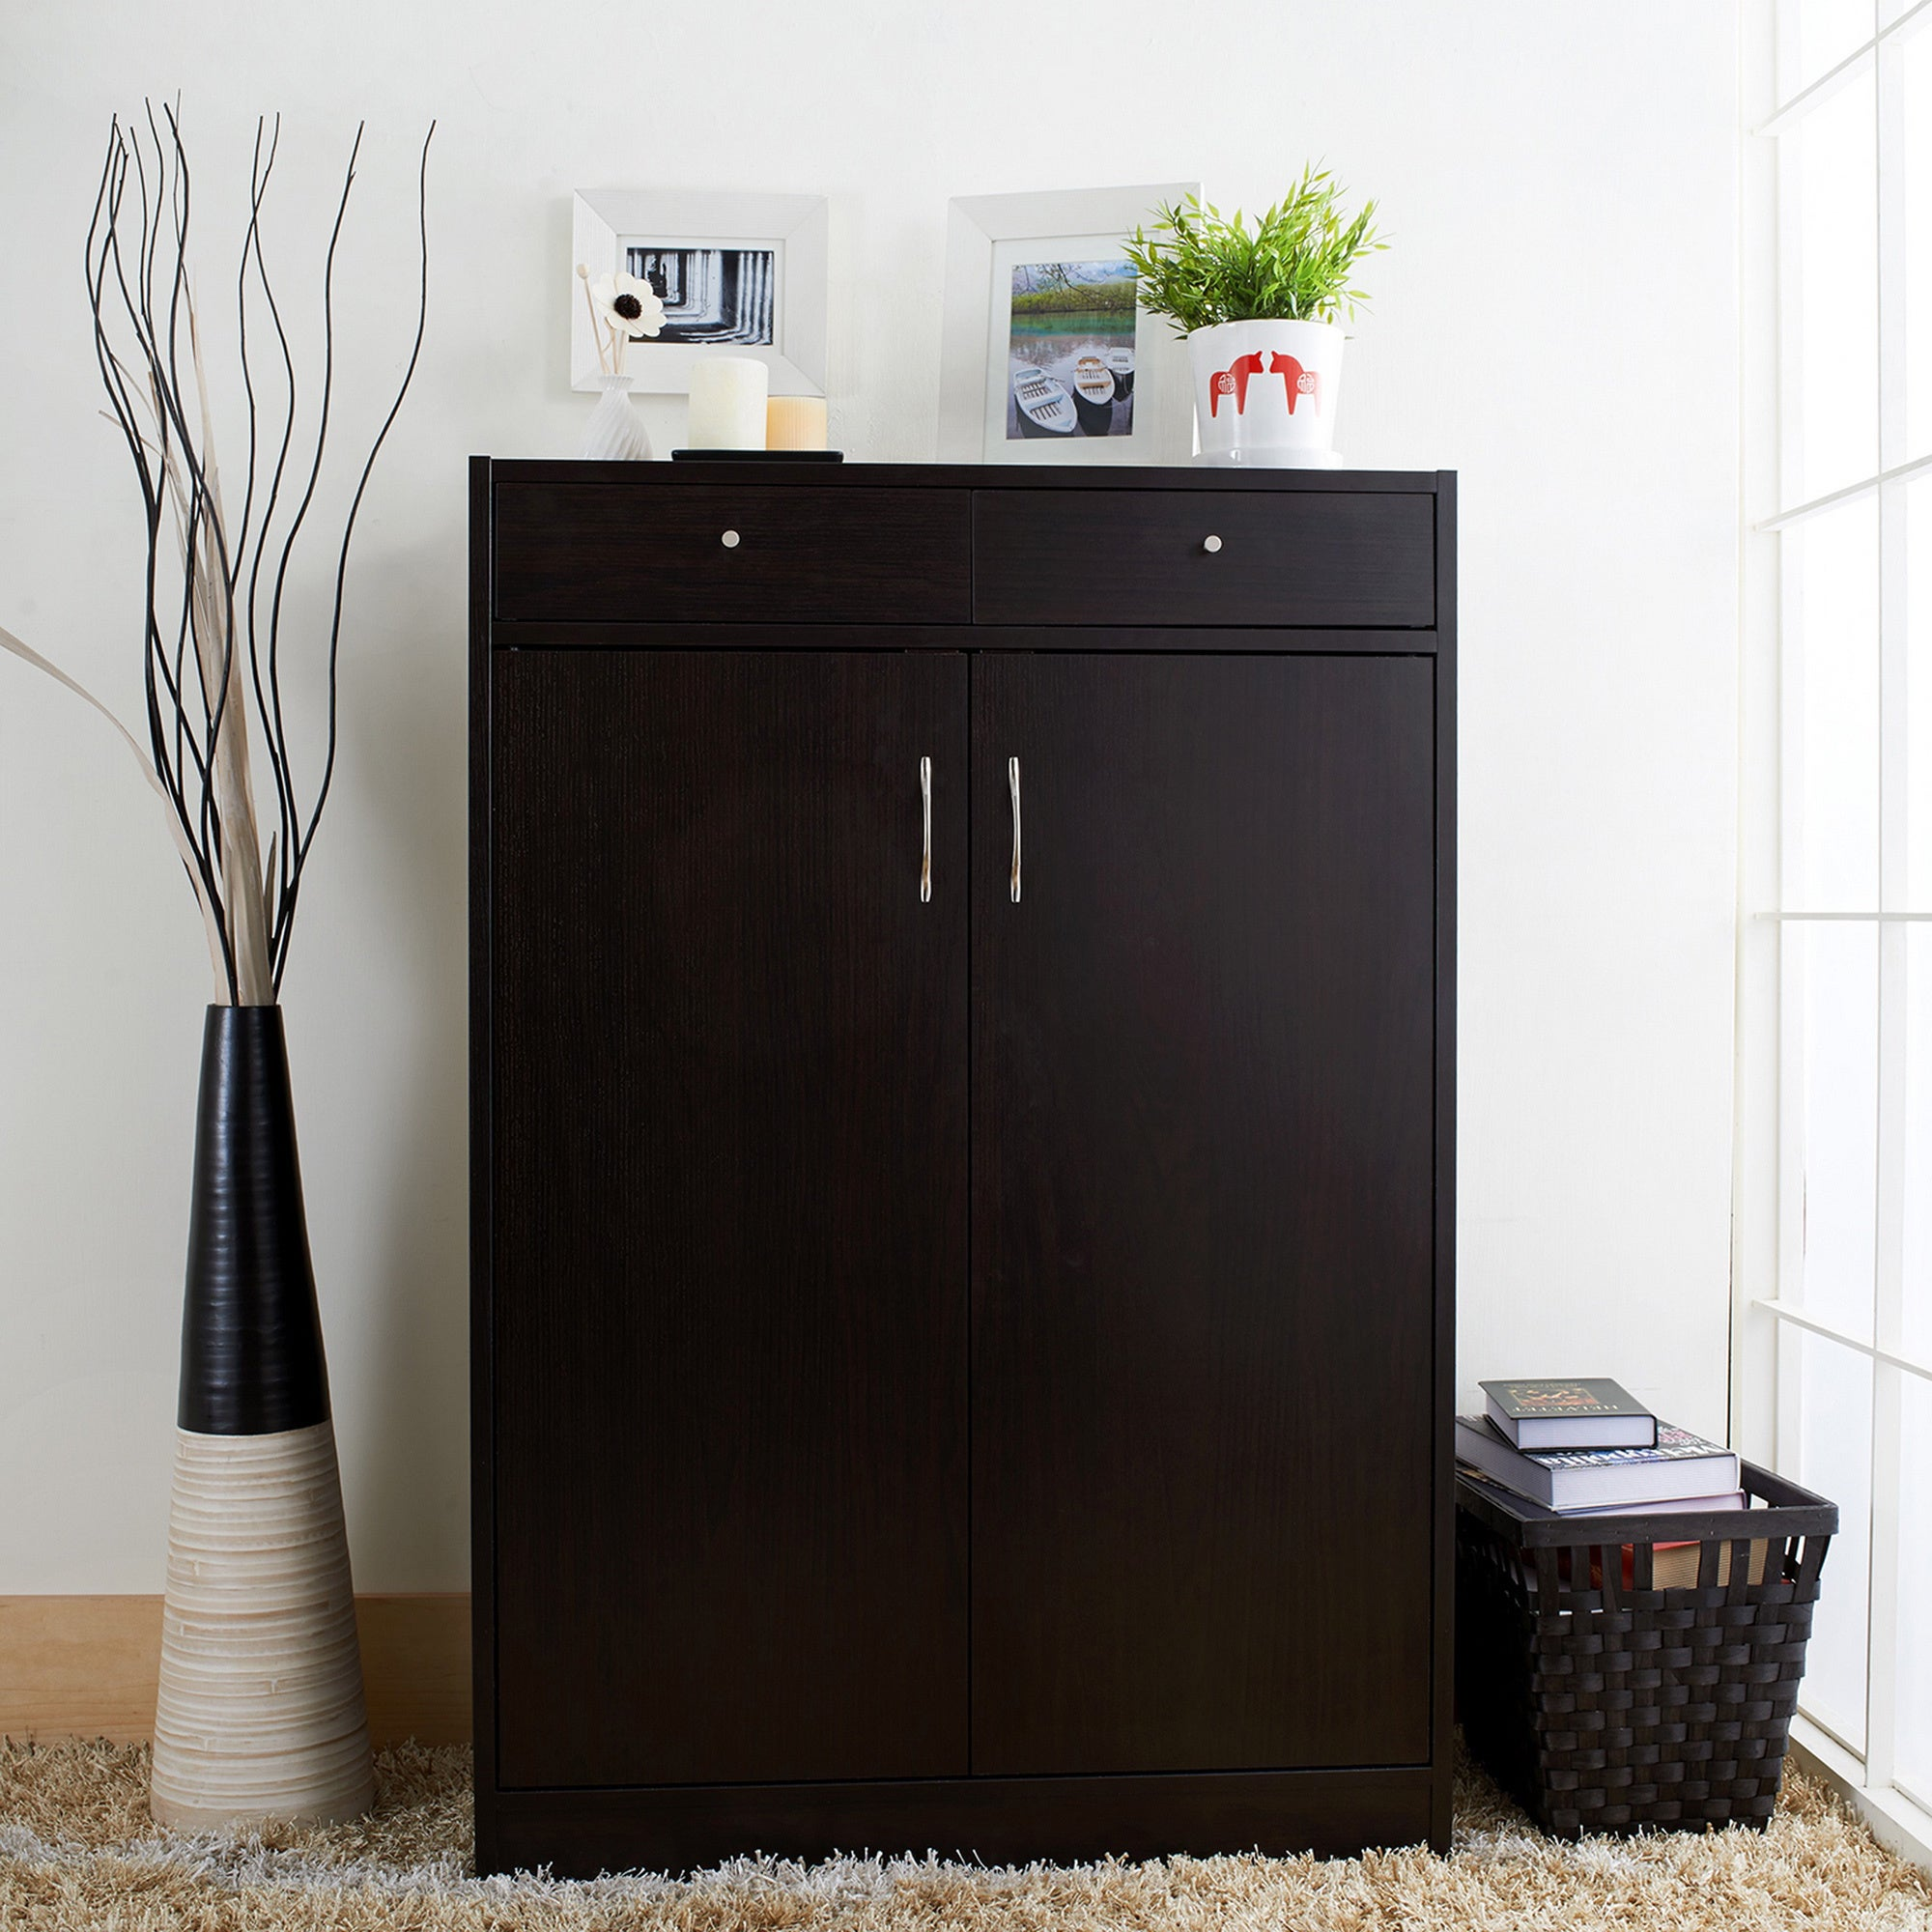 Genial Shop Furniture Of America 5 Shelf Shoe Cabinet With 2 Storage Bins   Free  Shipping Today   Overstock.com   3874178